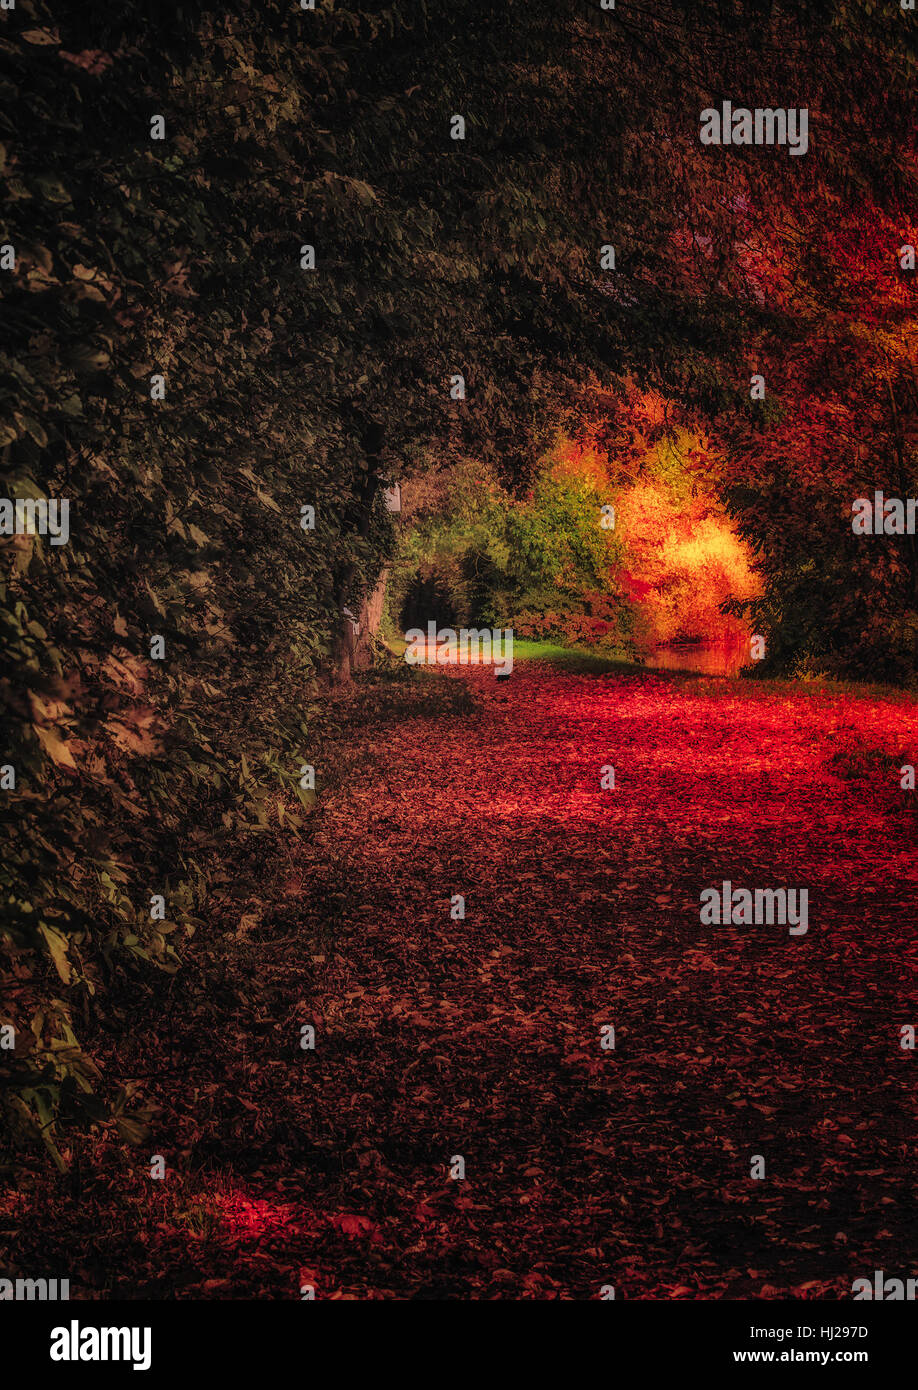 Fine art surrealistic color image of an autumnal hollow path with many leaves taken with intense colors in red and - Stock Image